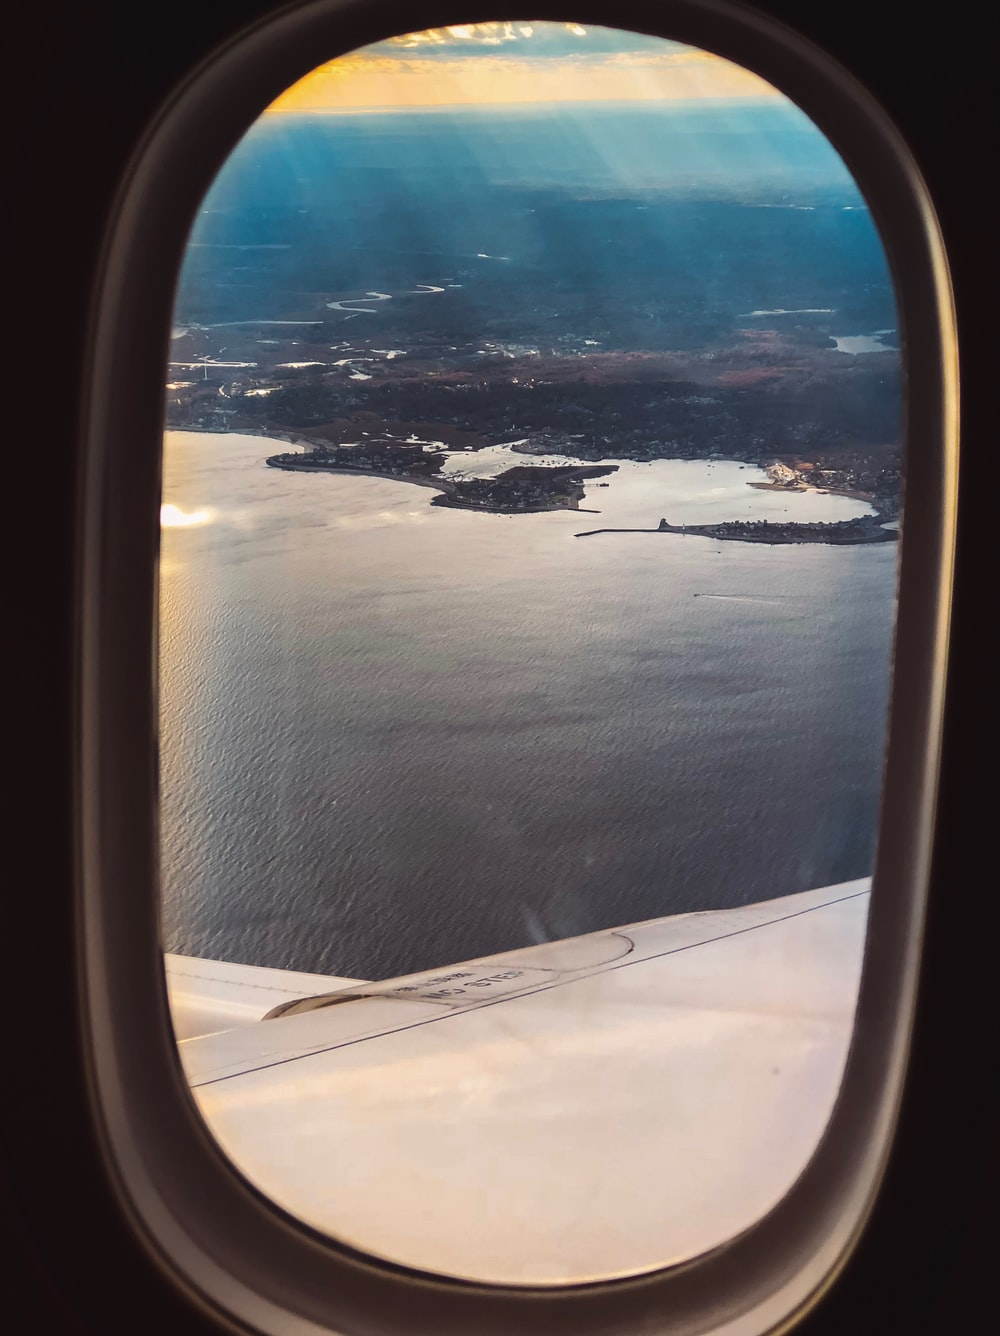 view of the ocean from an airplane window